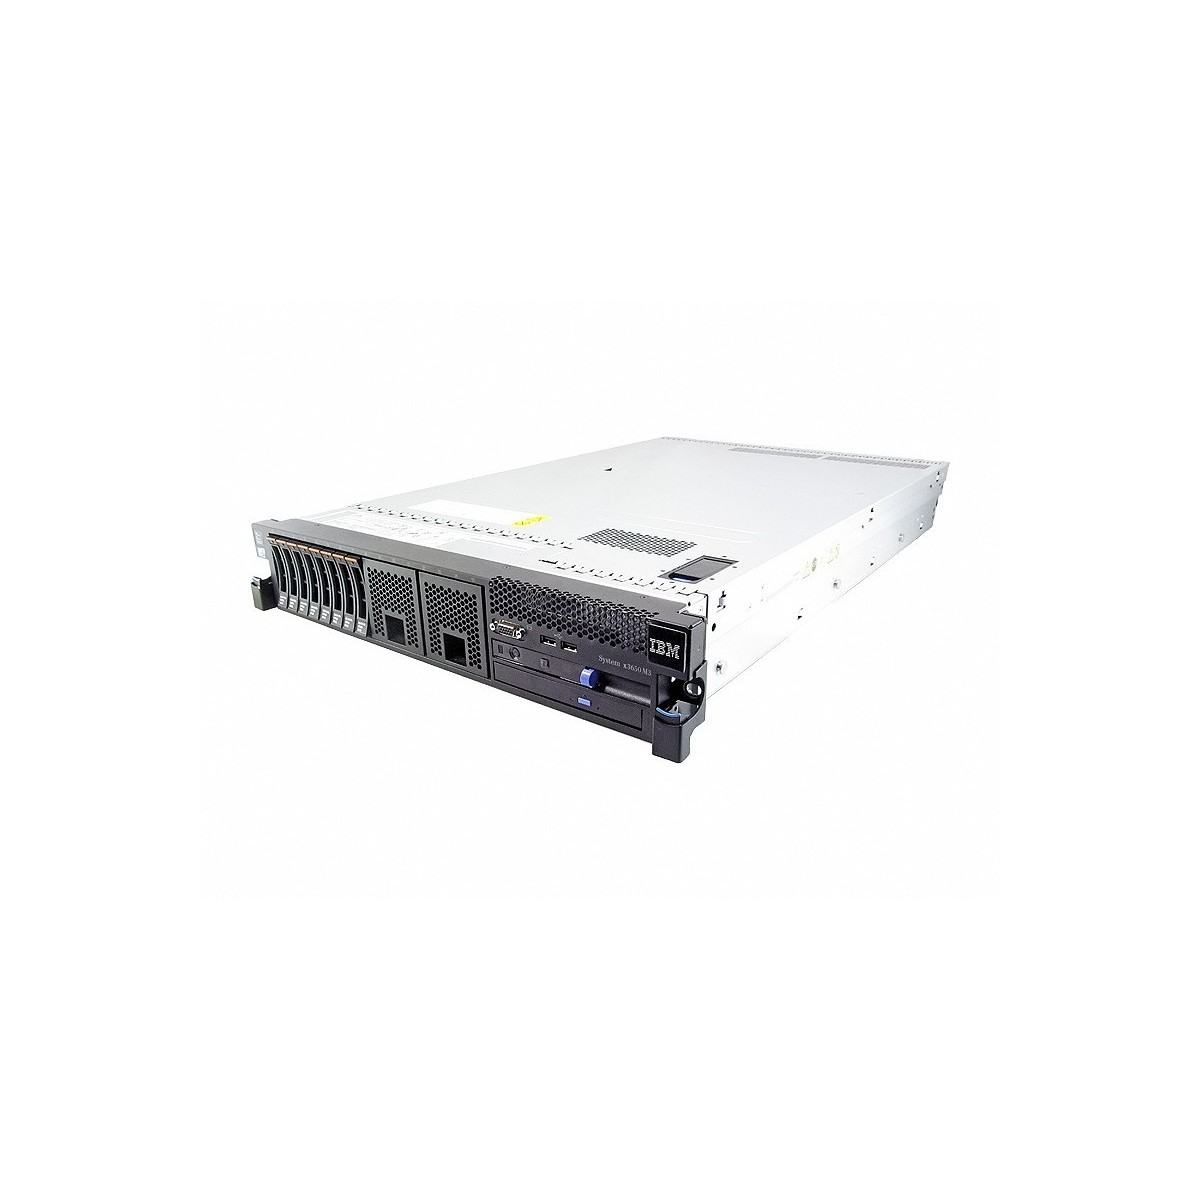 SERWER HP DL585 G7 4x2,1GHZ 12-CORE/256GB RAM/4xPSU